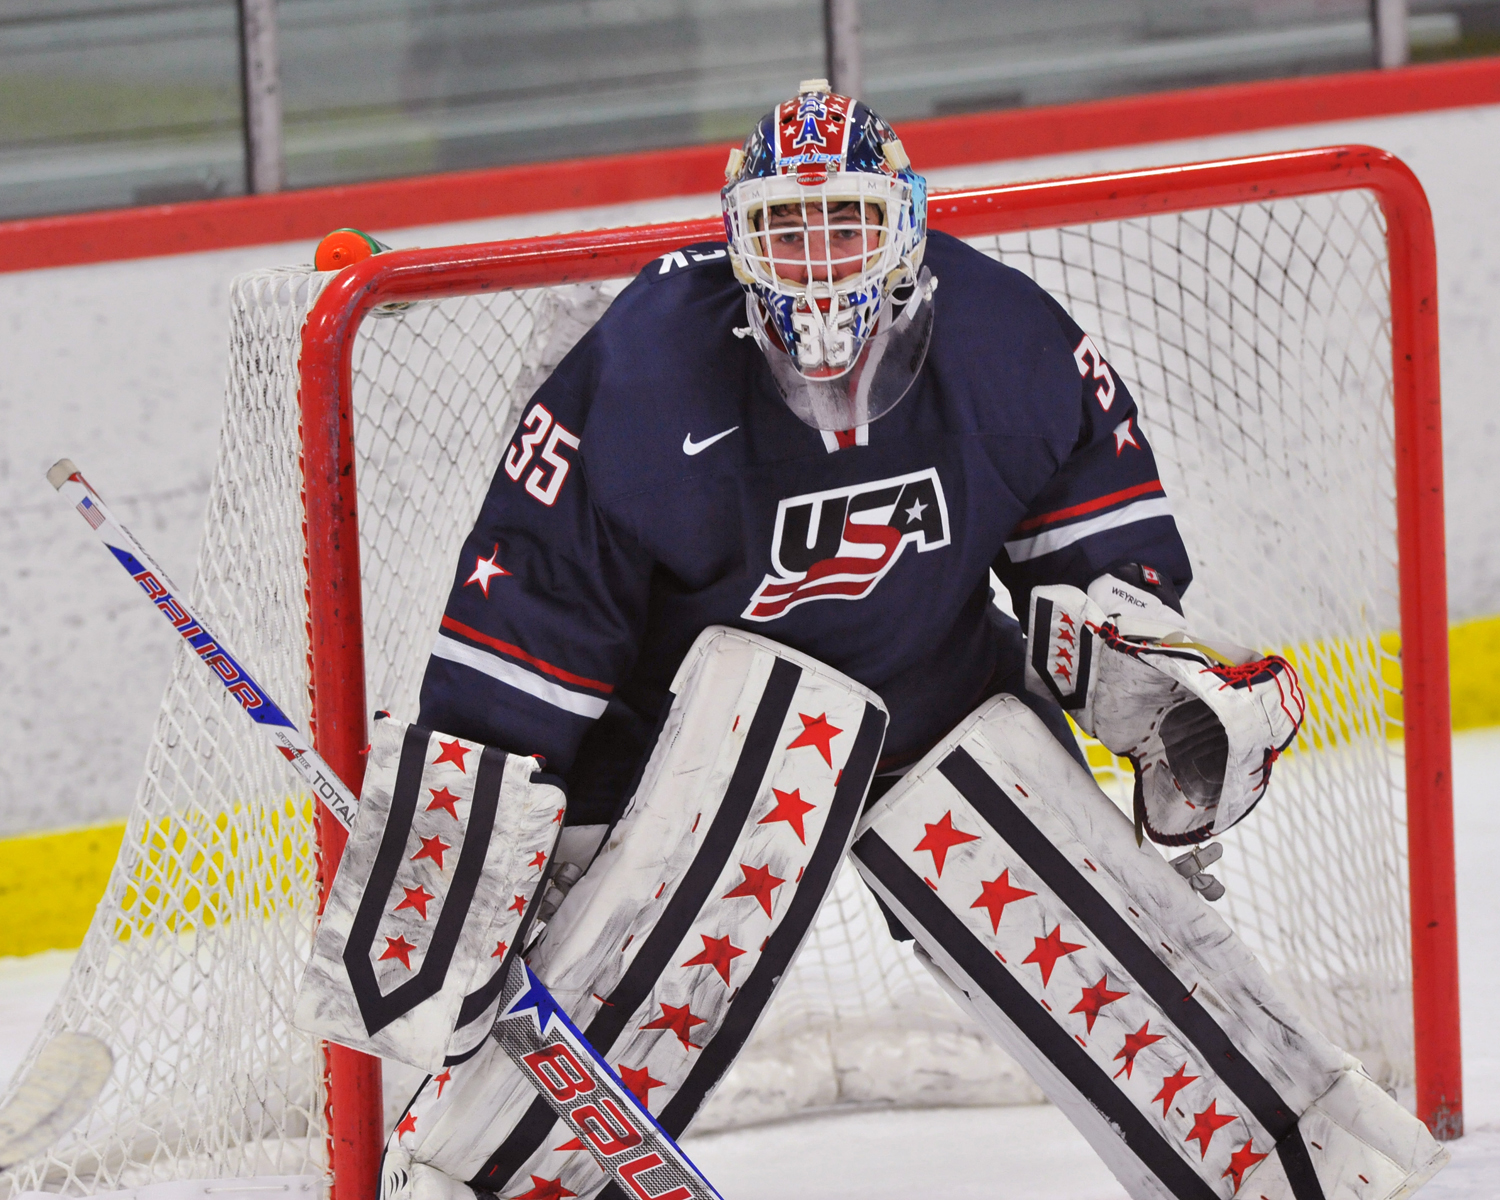 Blake Weyrick (USA Hockey)